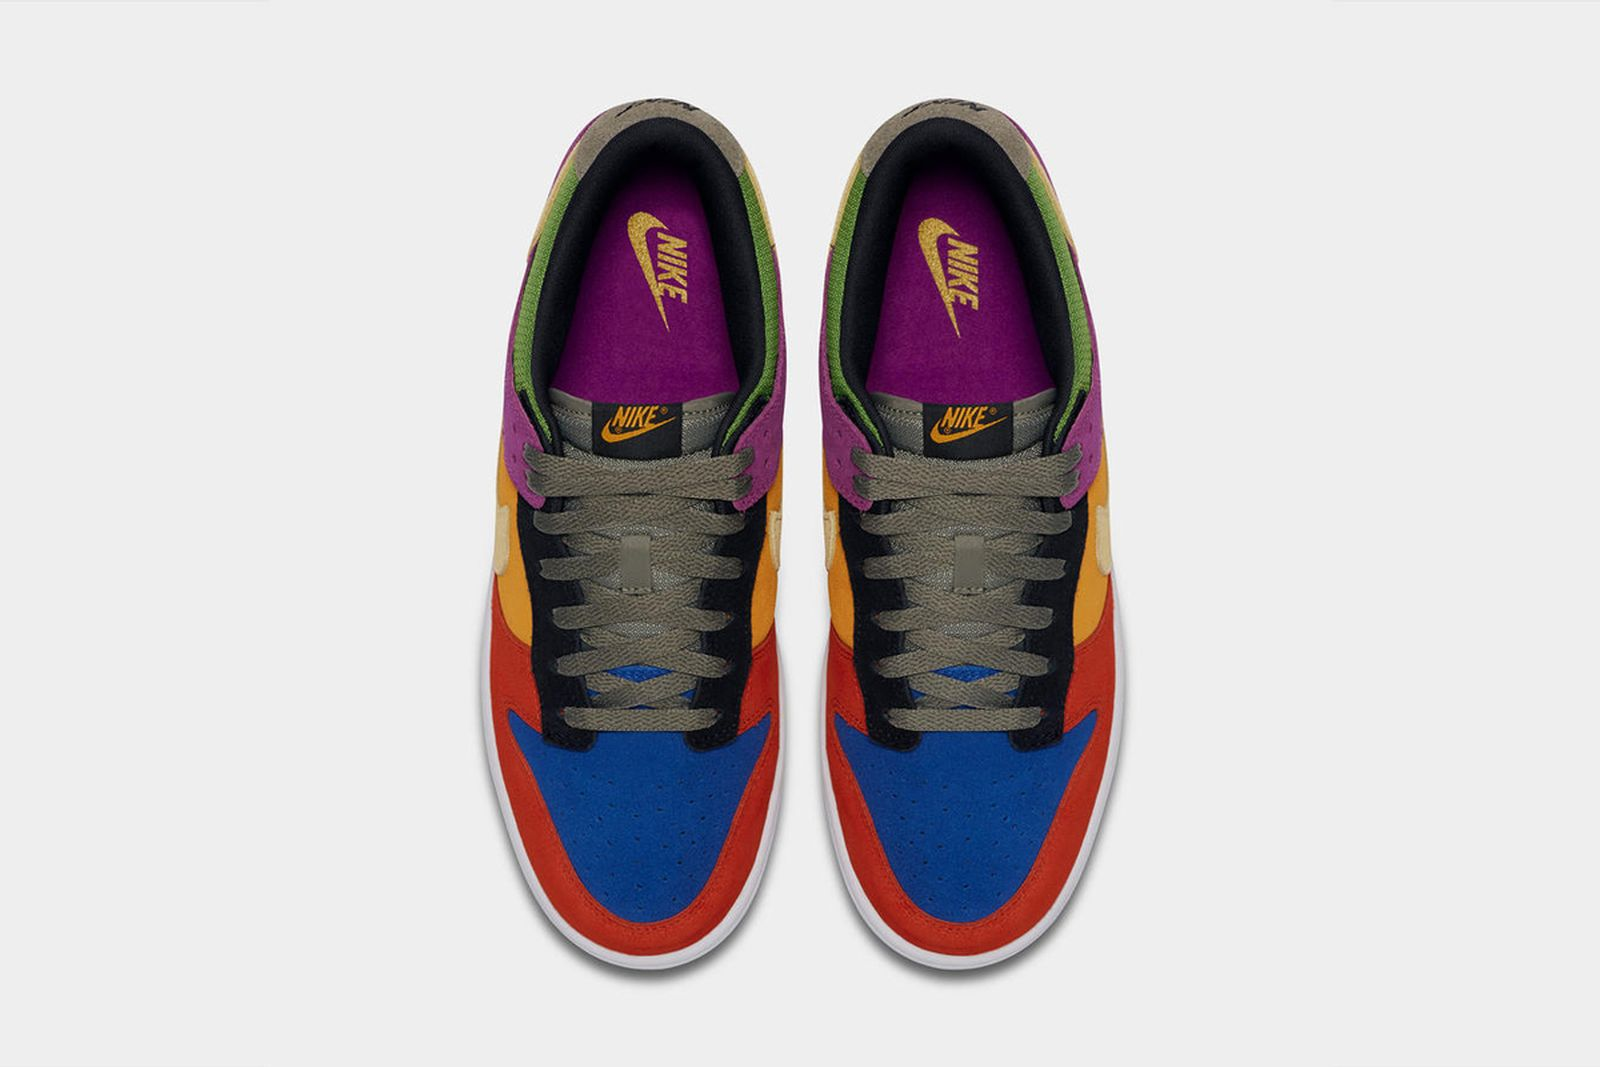 Majestuoso simbólico aves de corral  Nike Dunk Low Viotech: How & Where to Buy Today